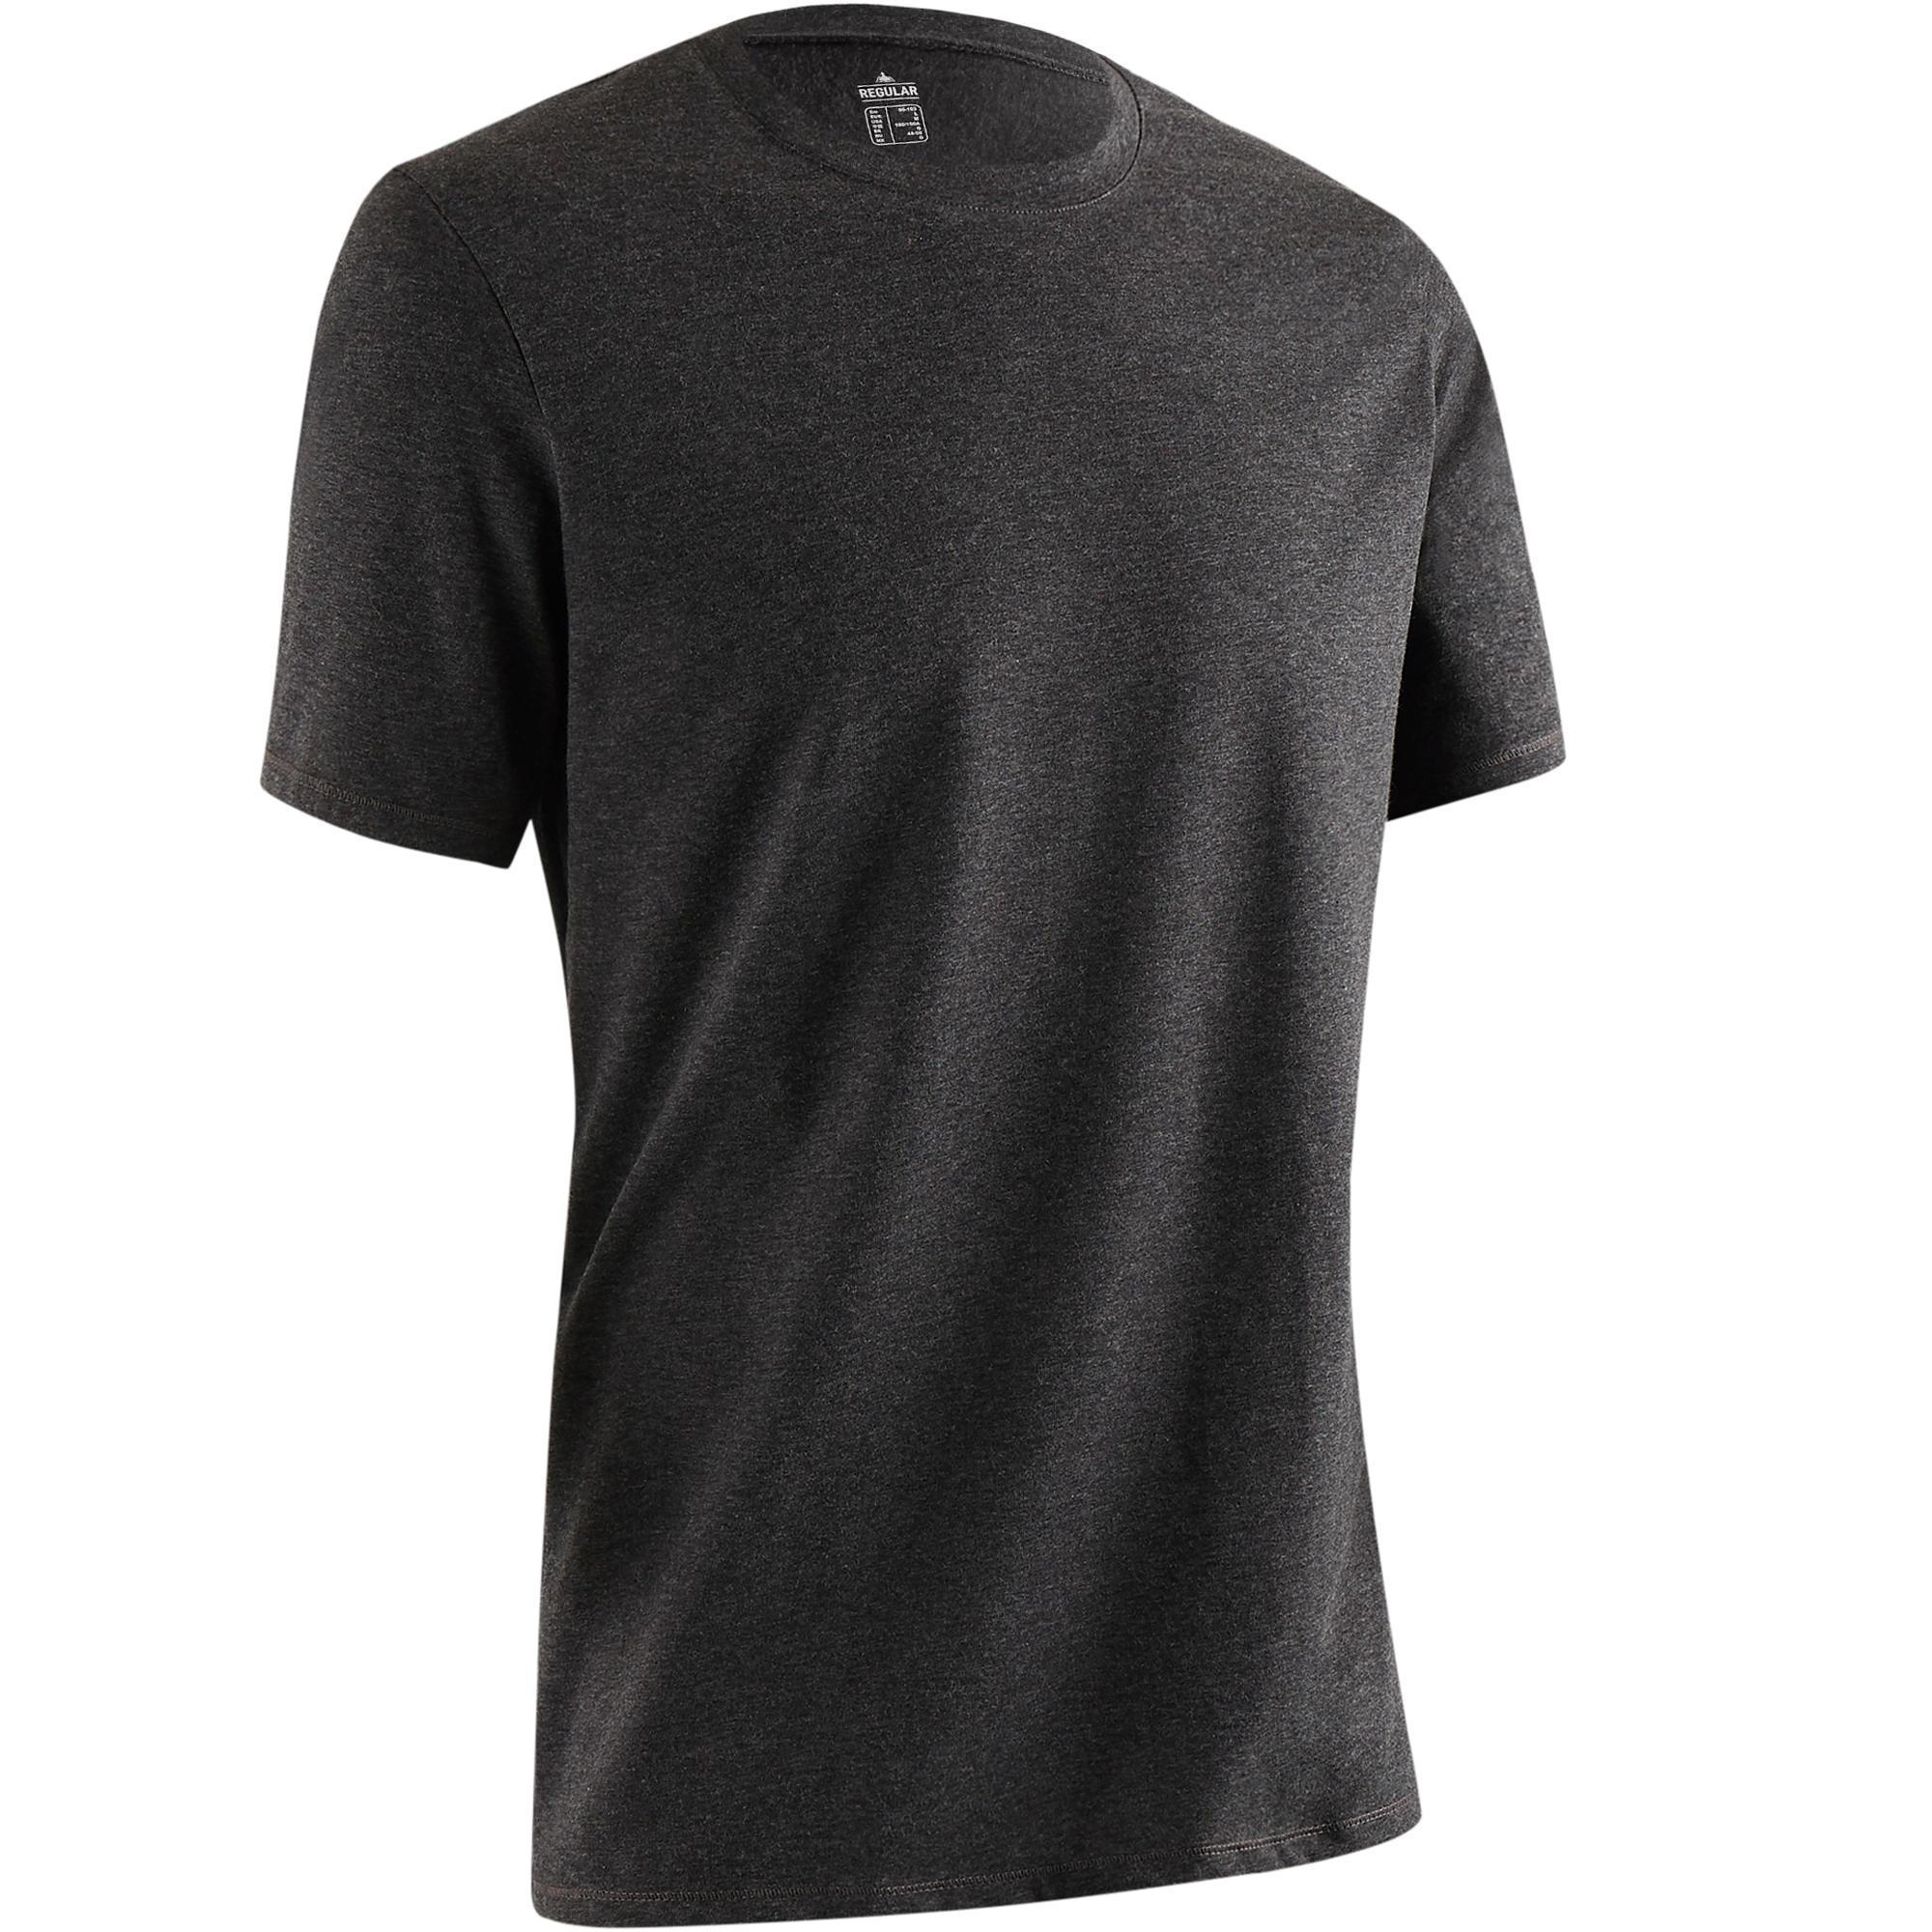 Domyos T-shirt 500 regular fit pilates en lichte gym heren